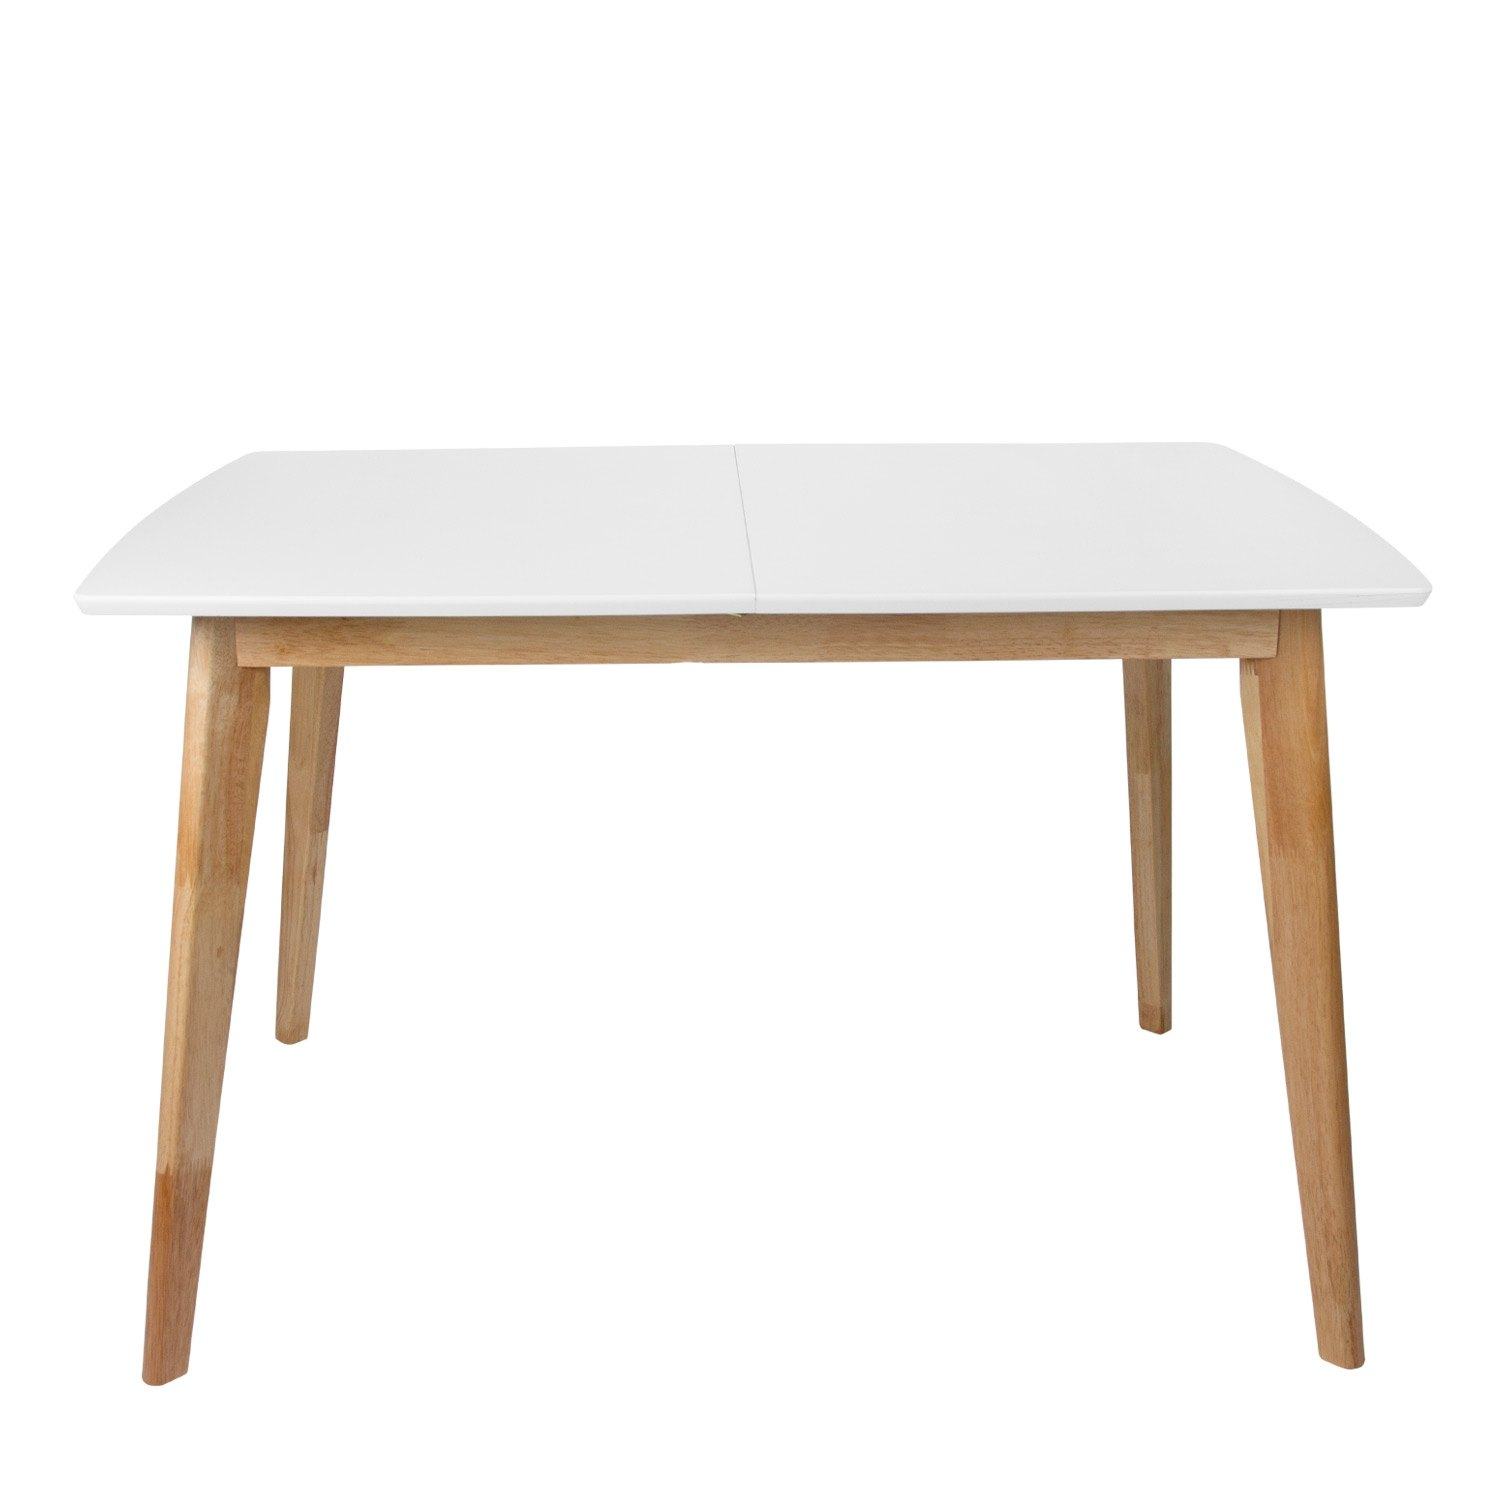 Table nordique extensible table blanche en bois extensible for Mesas comedor extensibles modernas baratas